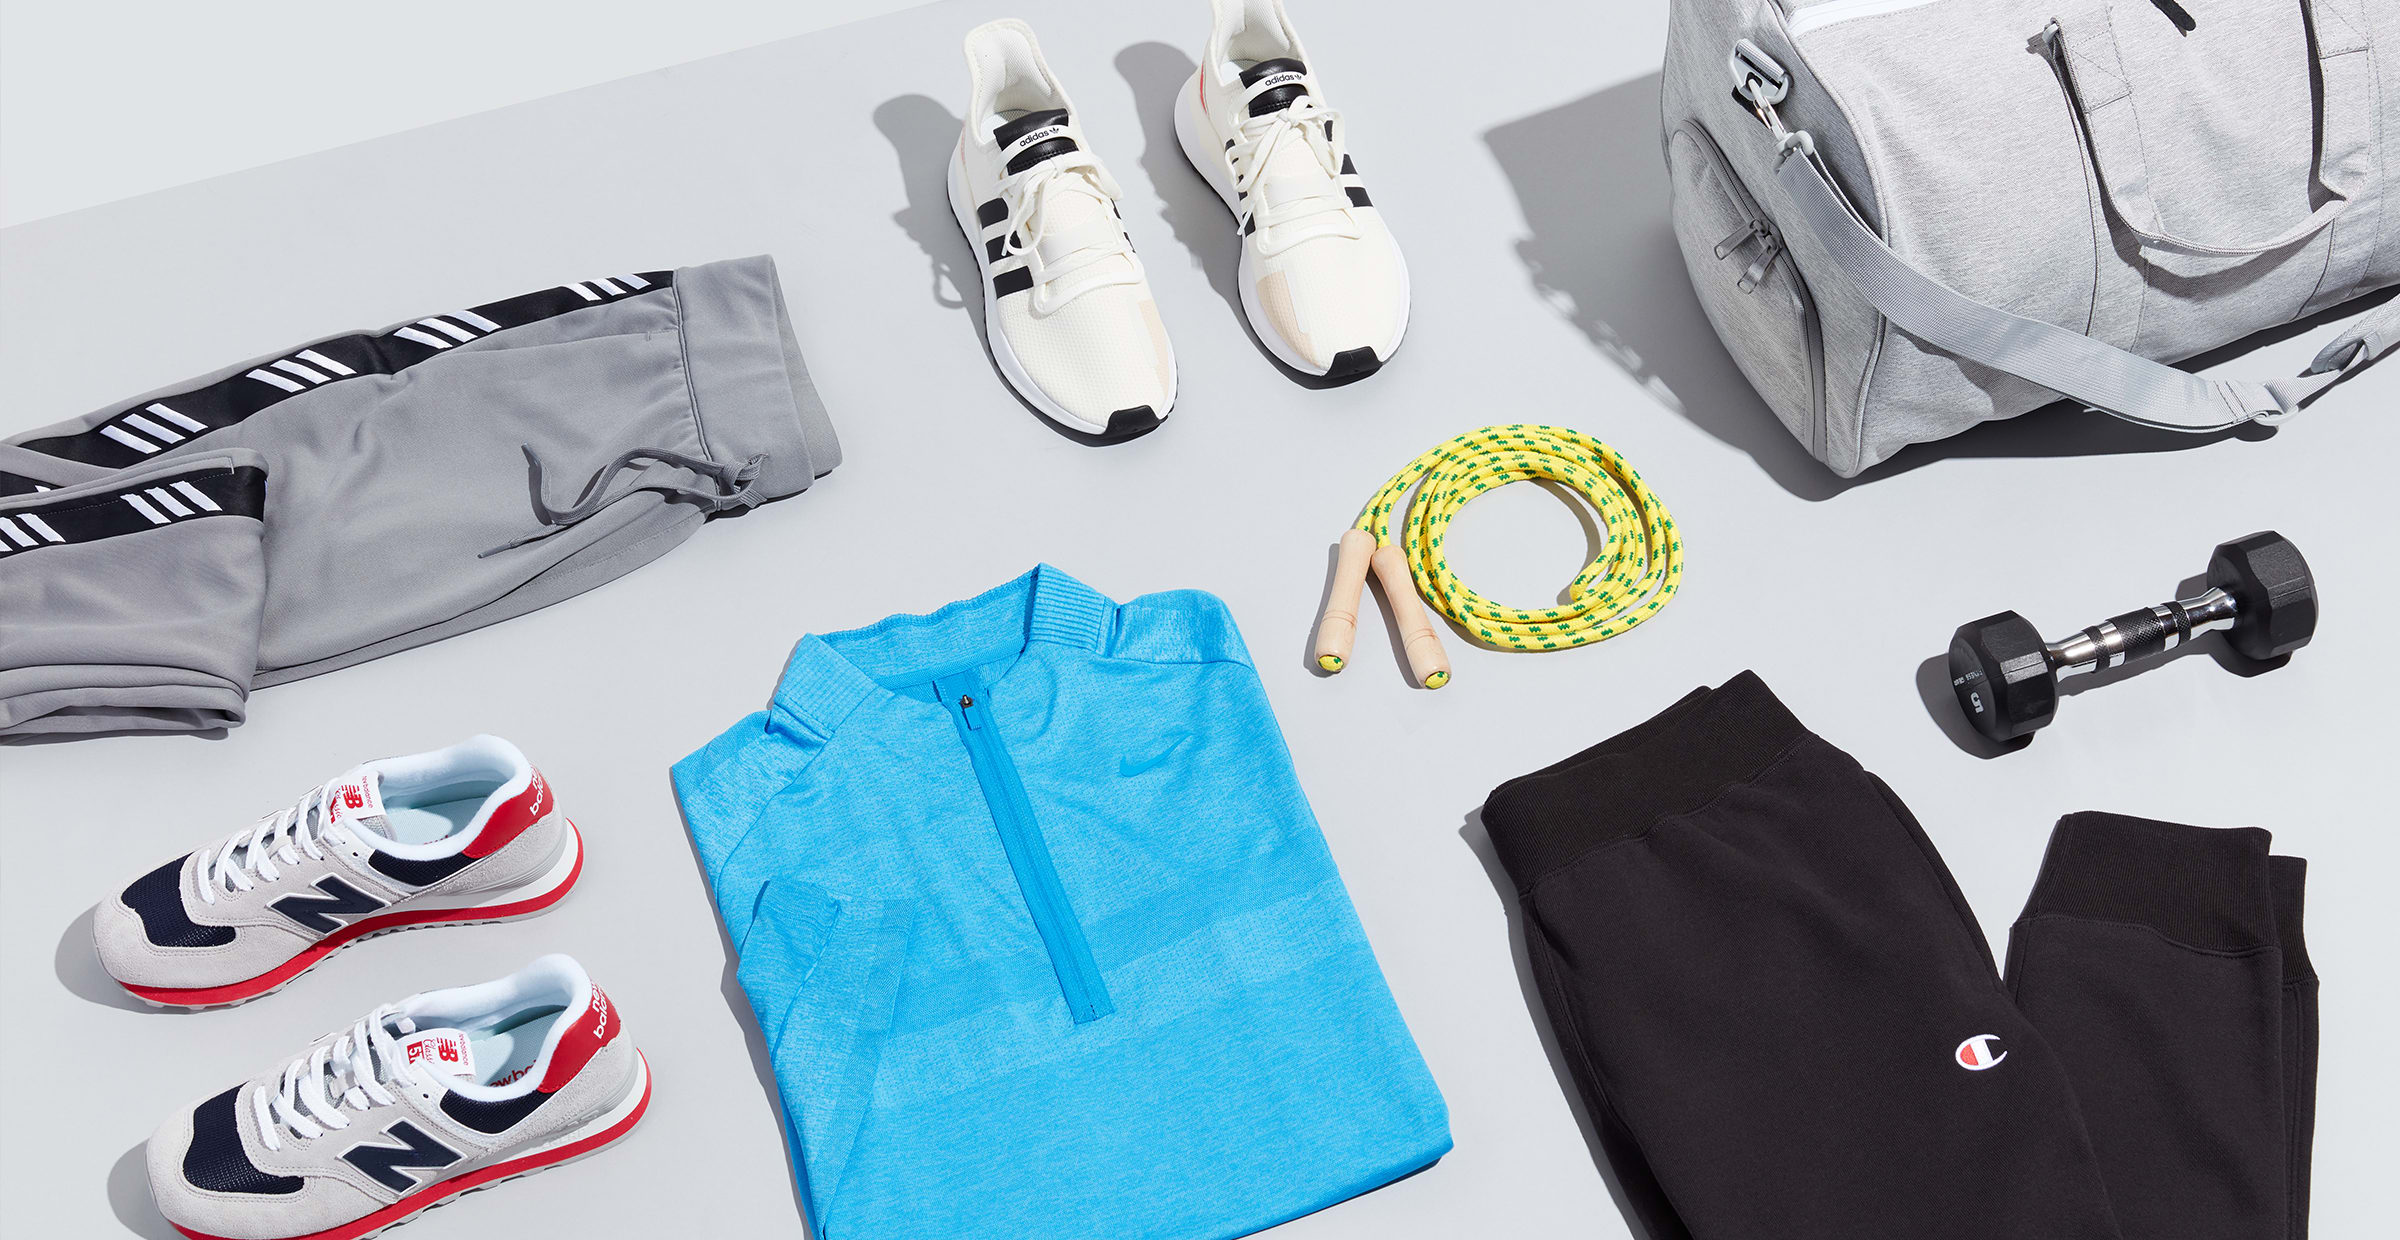 Men's activewear outfit